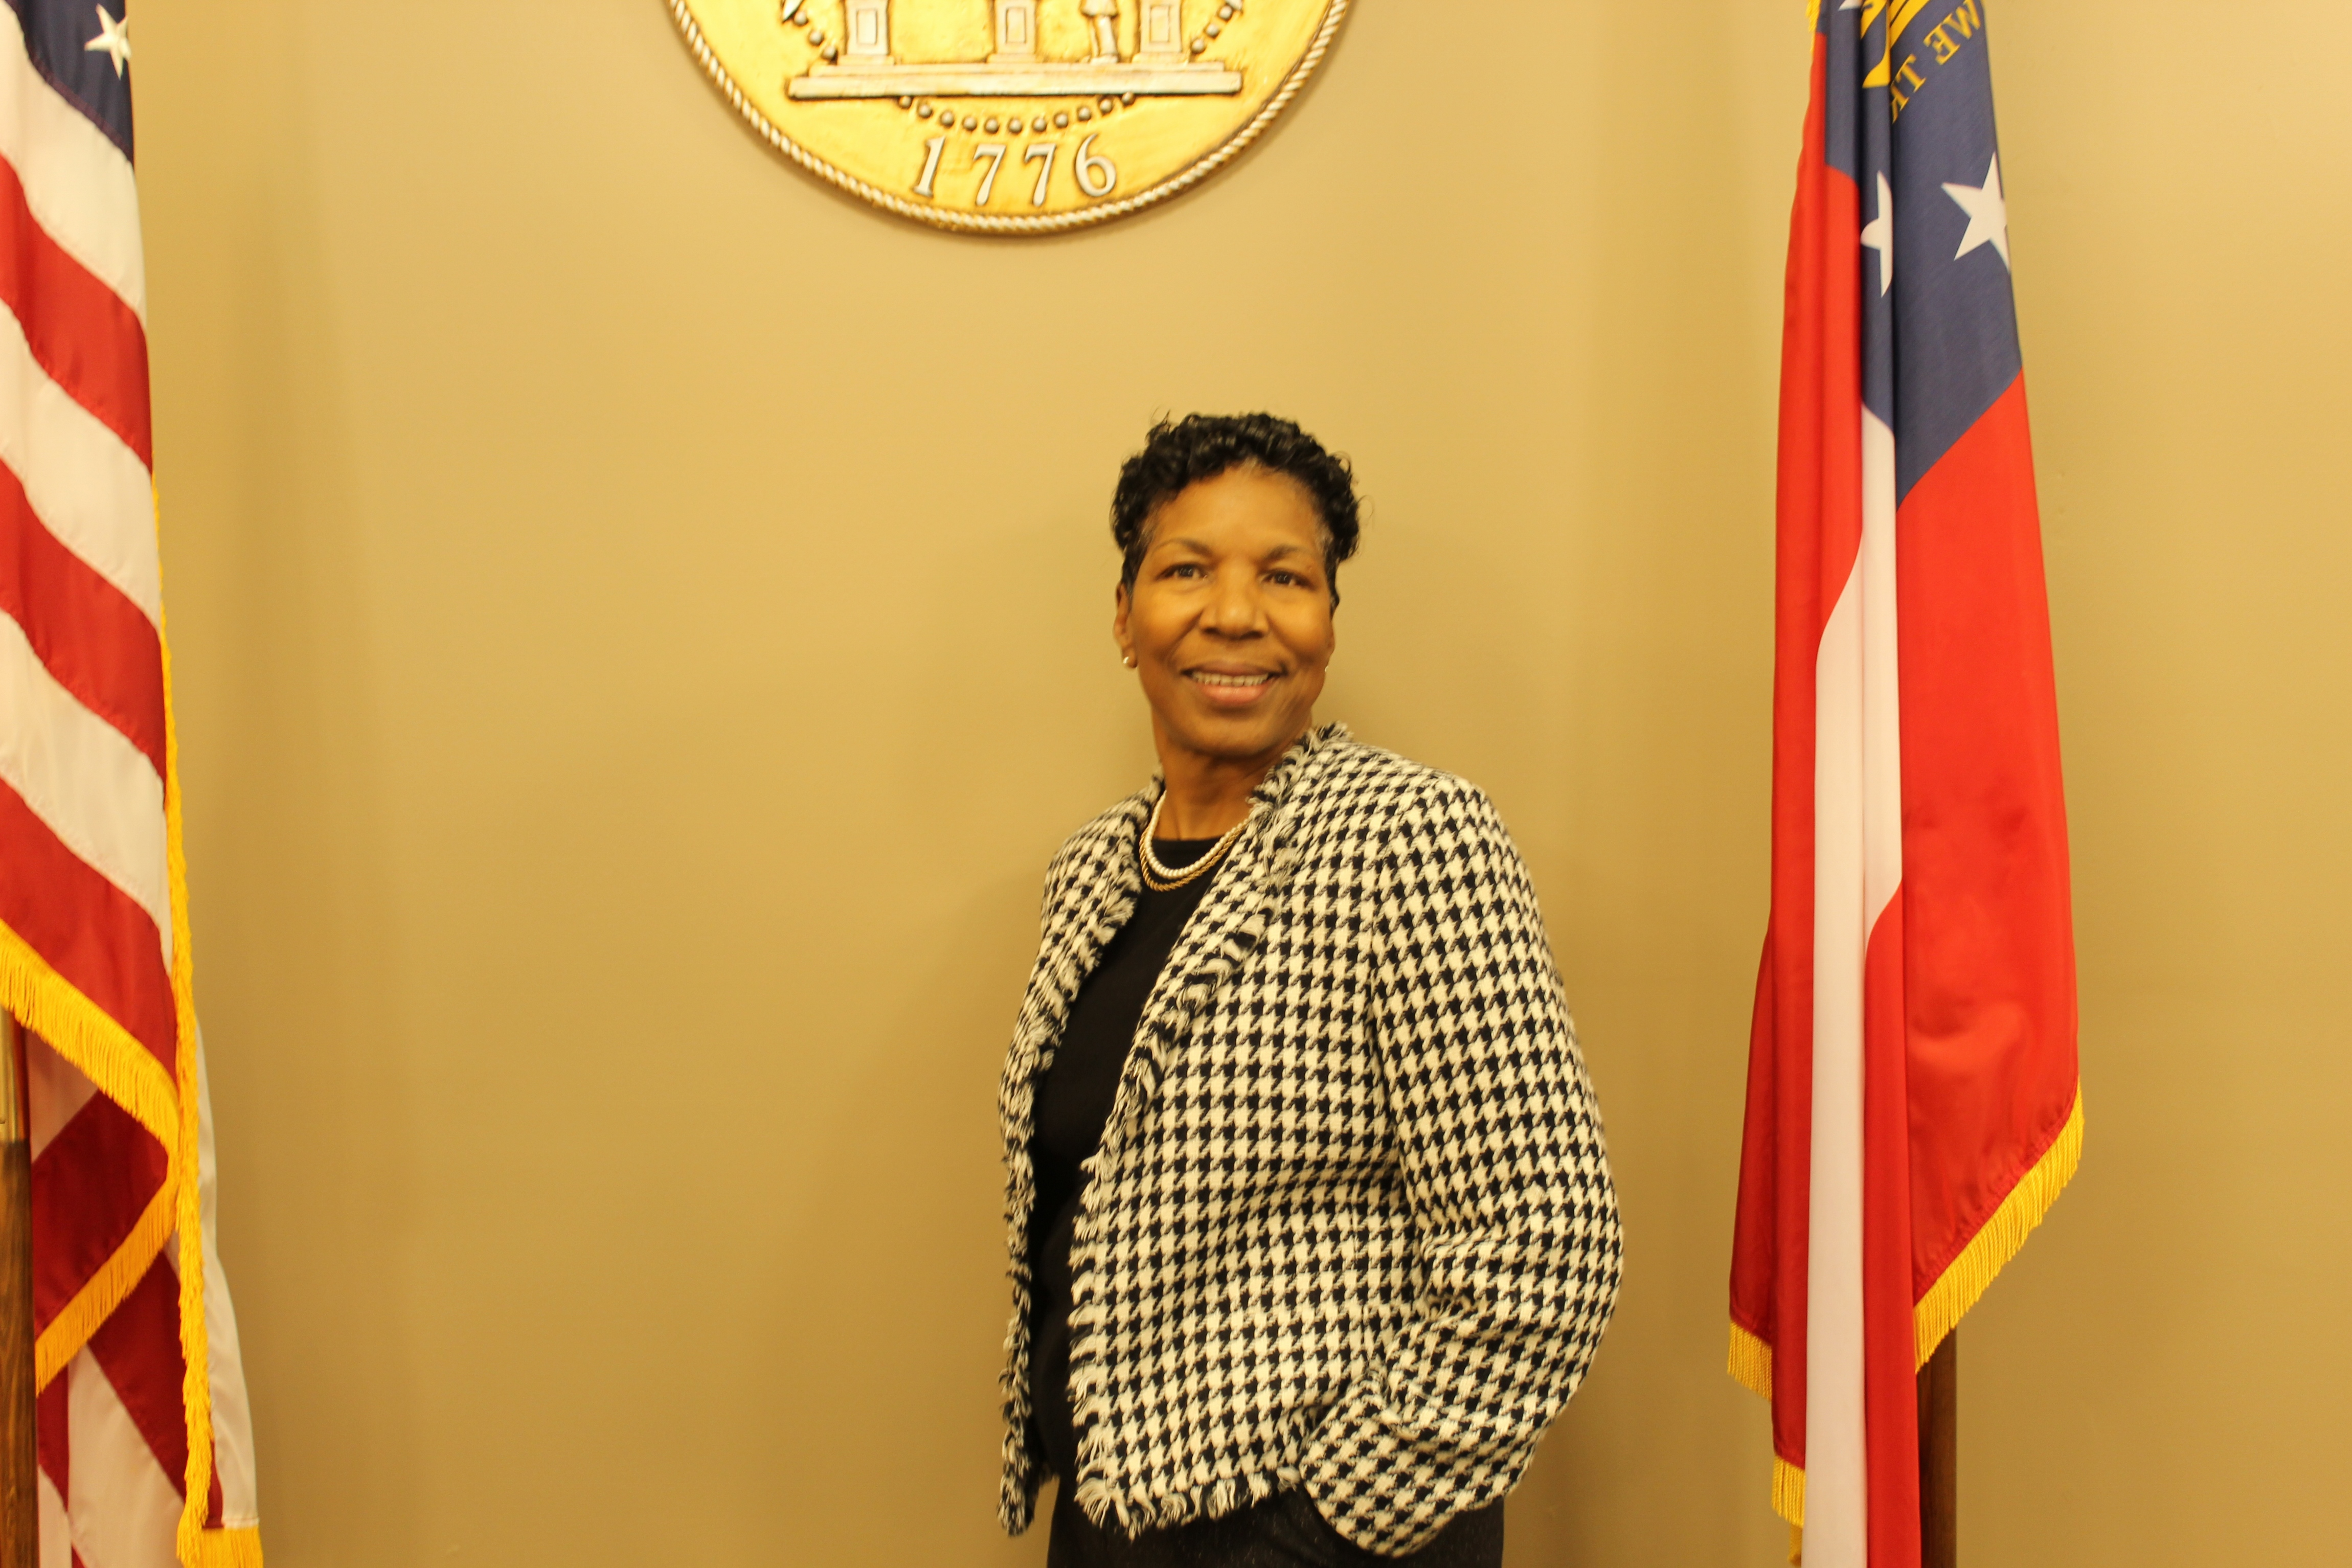 Commissioner Alphya Benefield